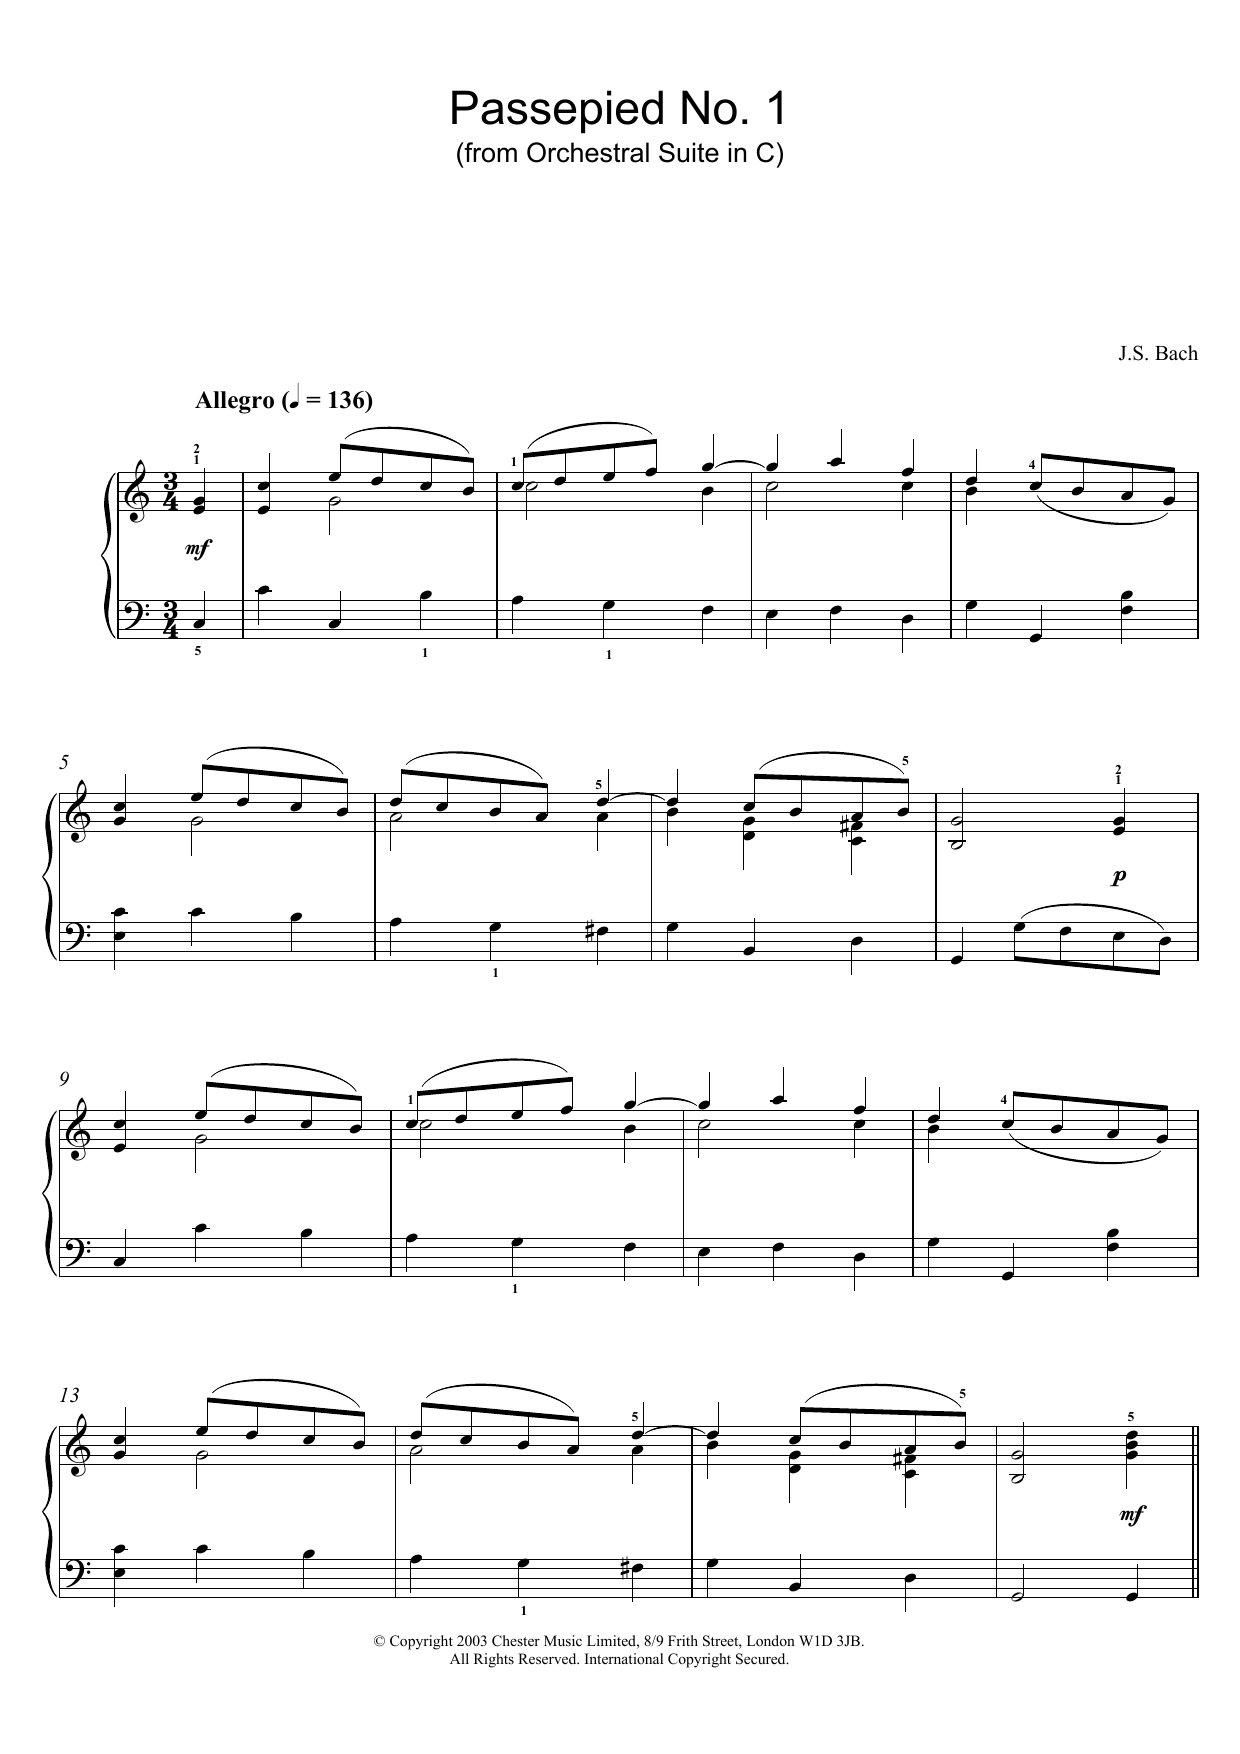 Passepied No. 1 (from Orchestral Suite in C) sheet music